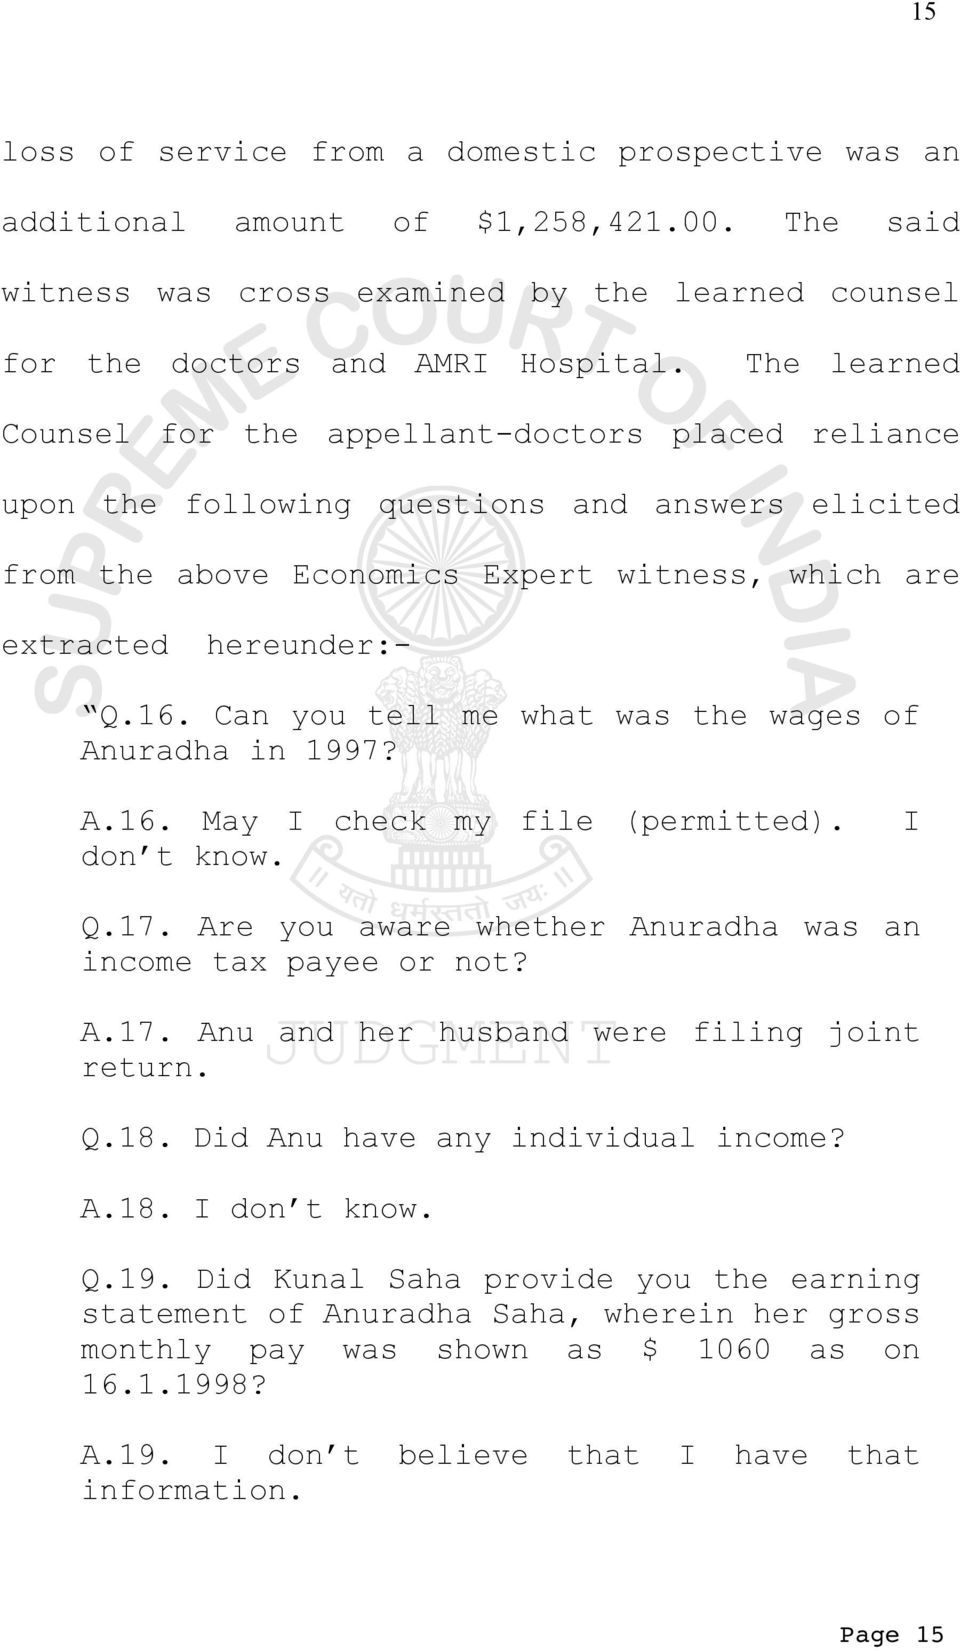 Can you tell me what was the wages of Anuradha in 1997? A.16. May I check my file (permitted). don t know. I Q.17. Are you aware whether Anuradha was an income tax payee or not? A.17. Anu and her husband were filing joint return.